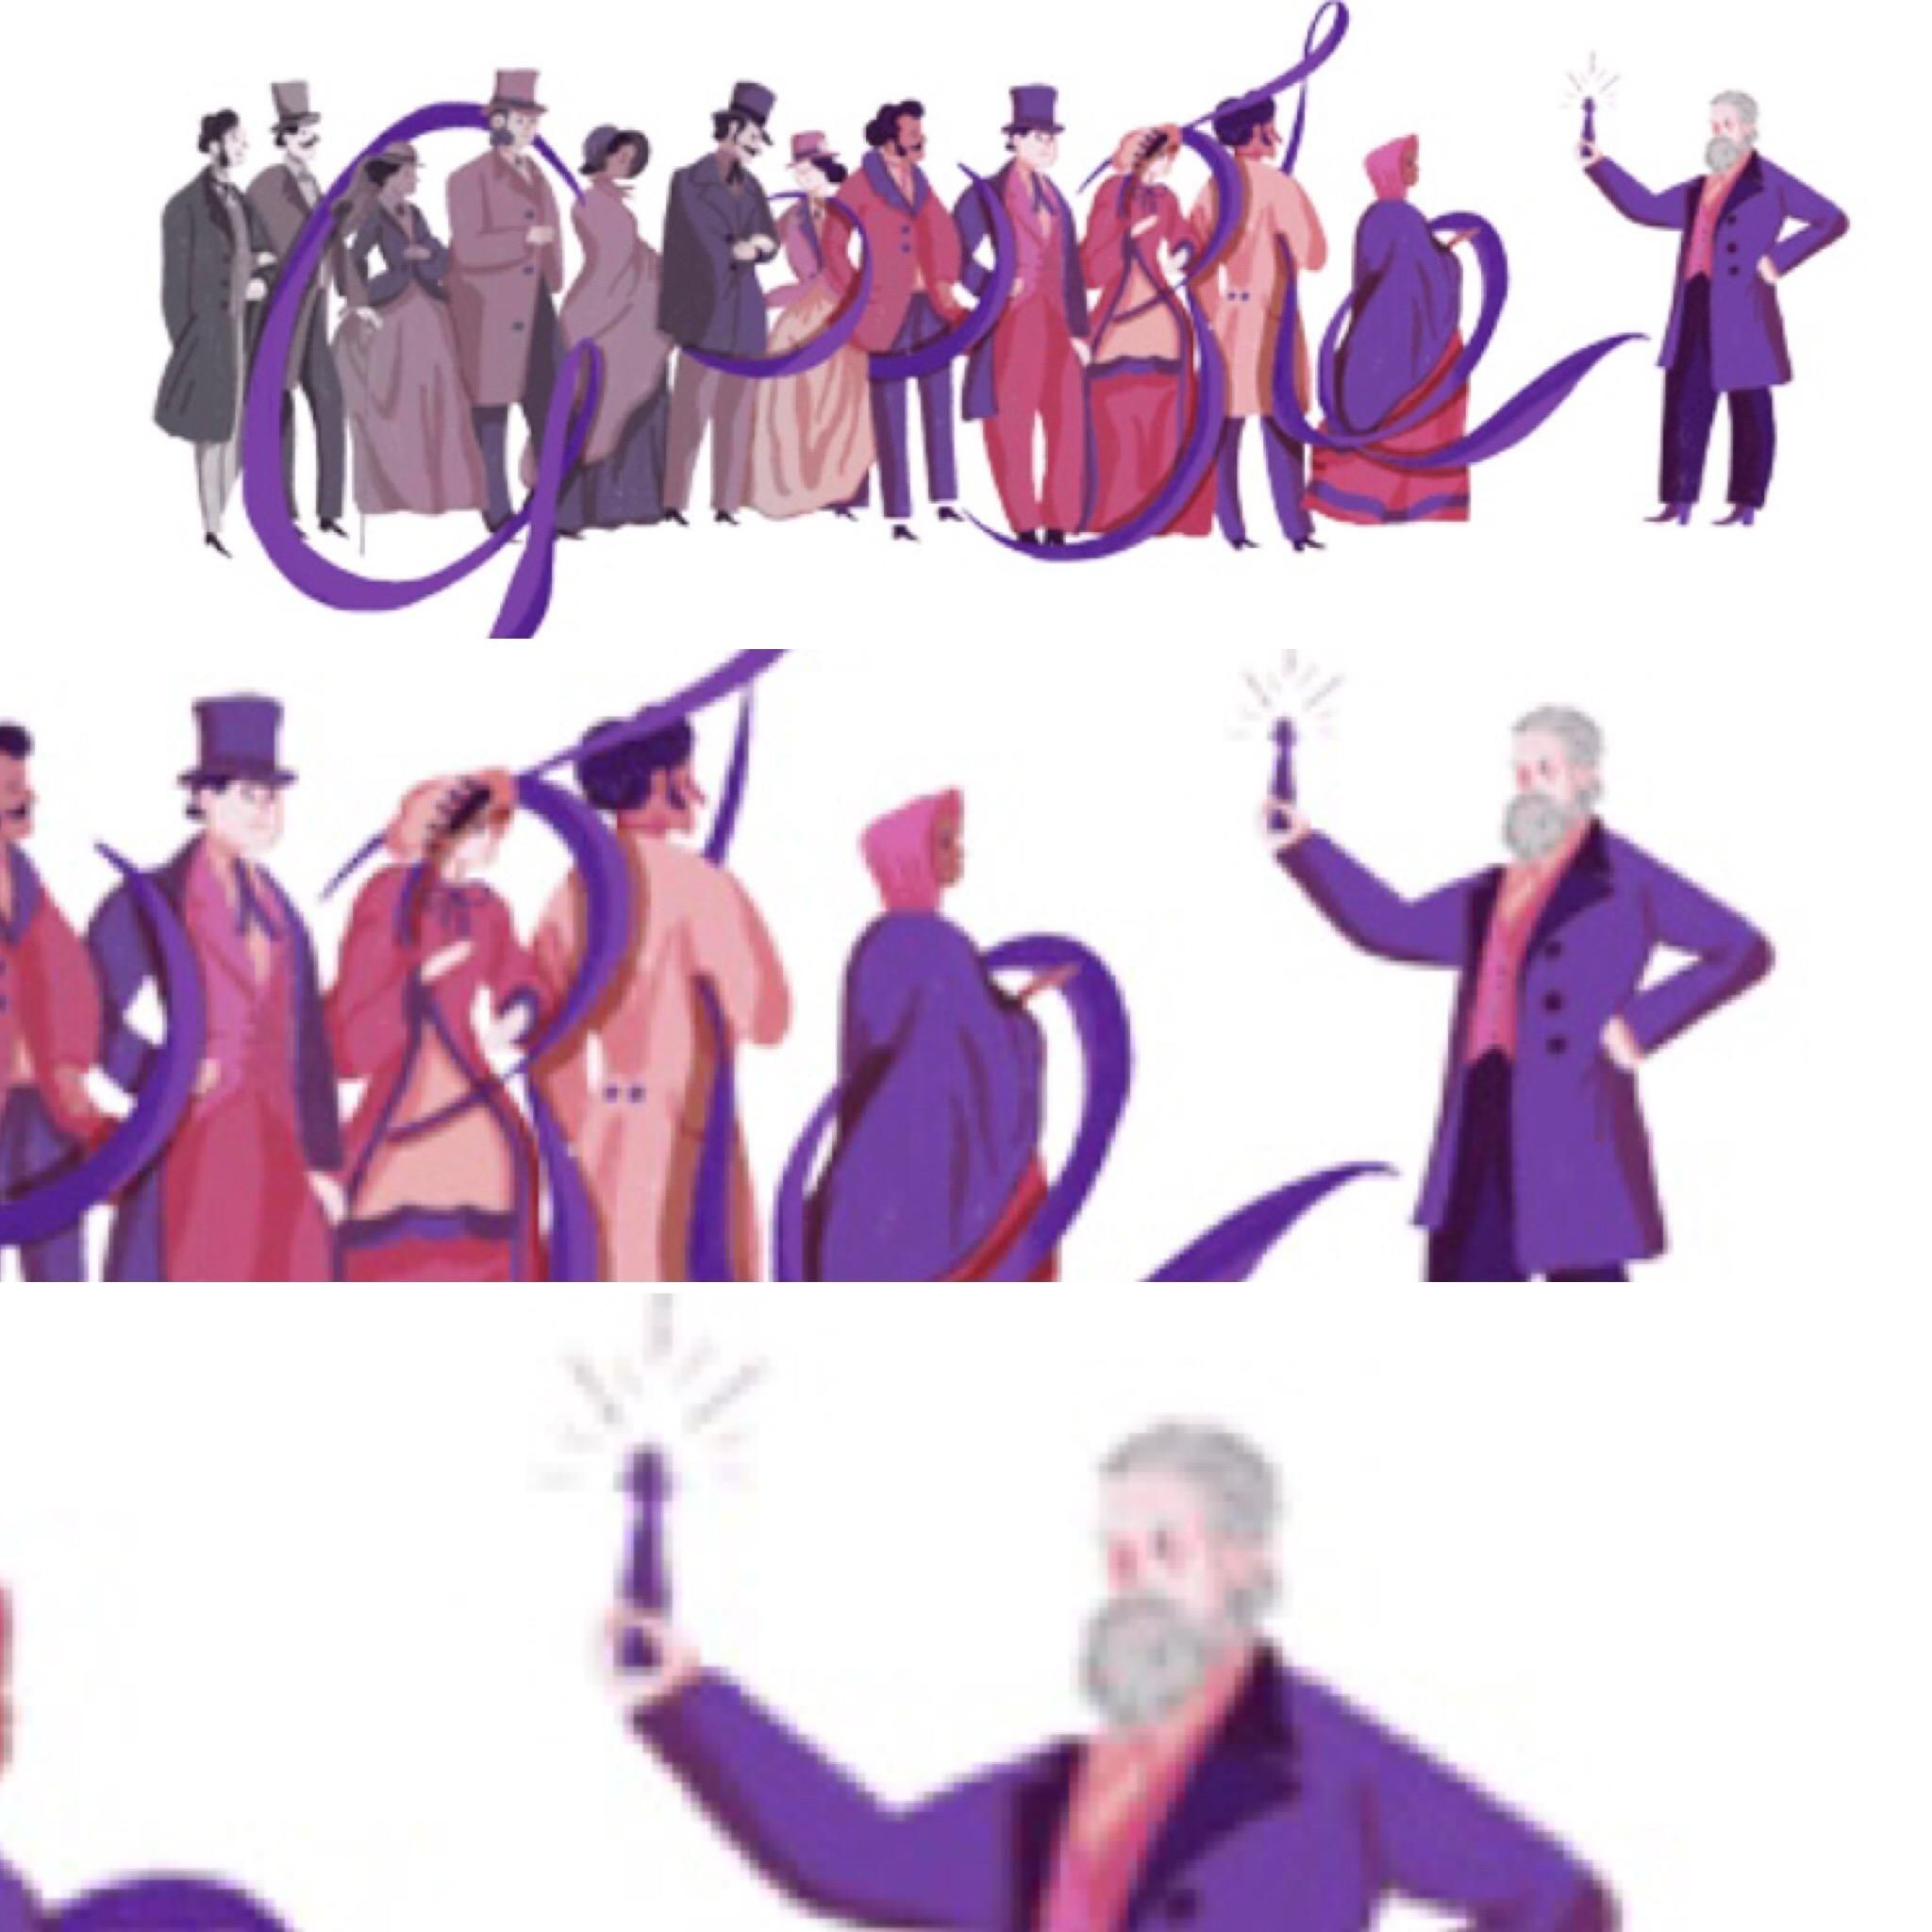 The google doodle today is about a chemist but it looks like it's about the man who discovered the dildo.